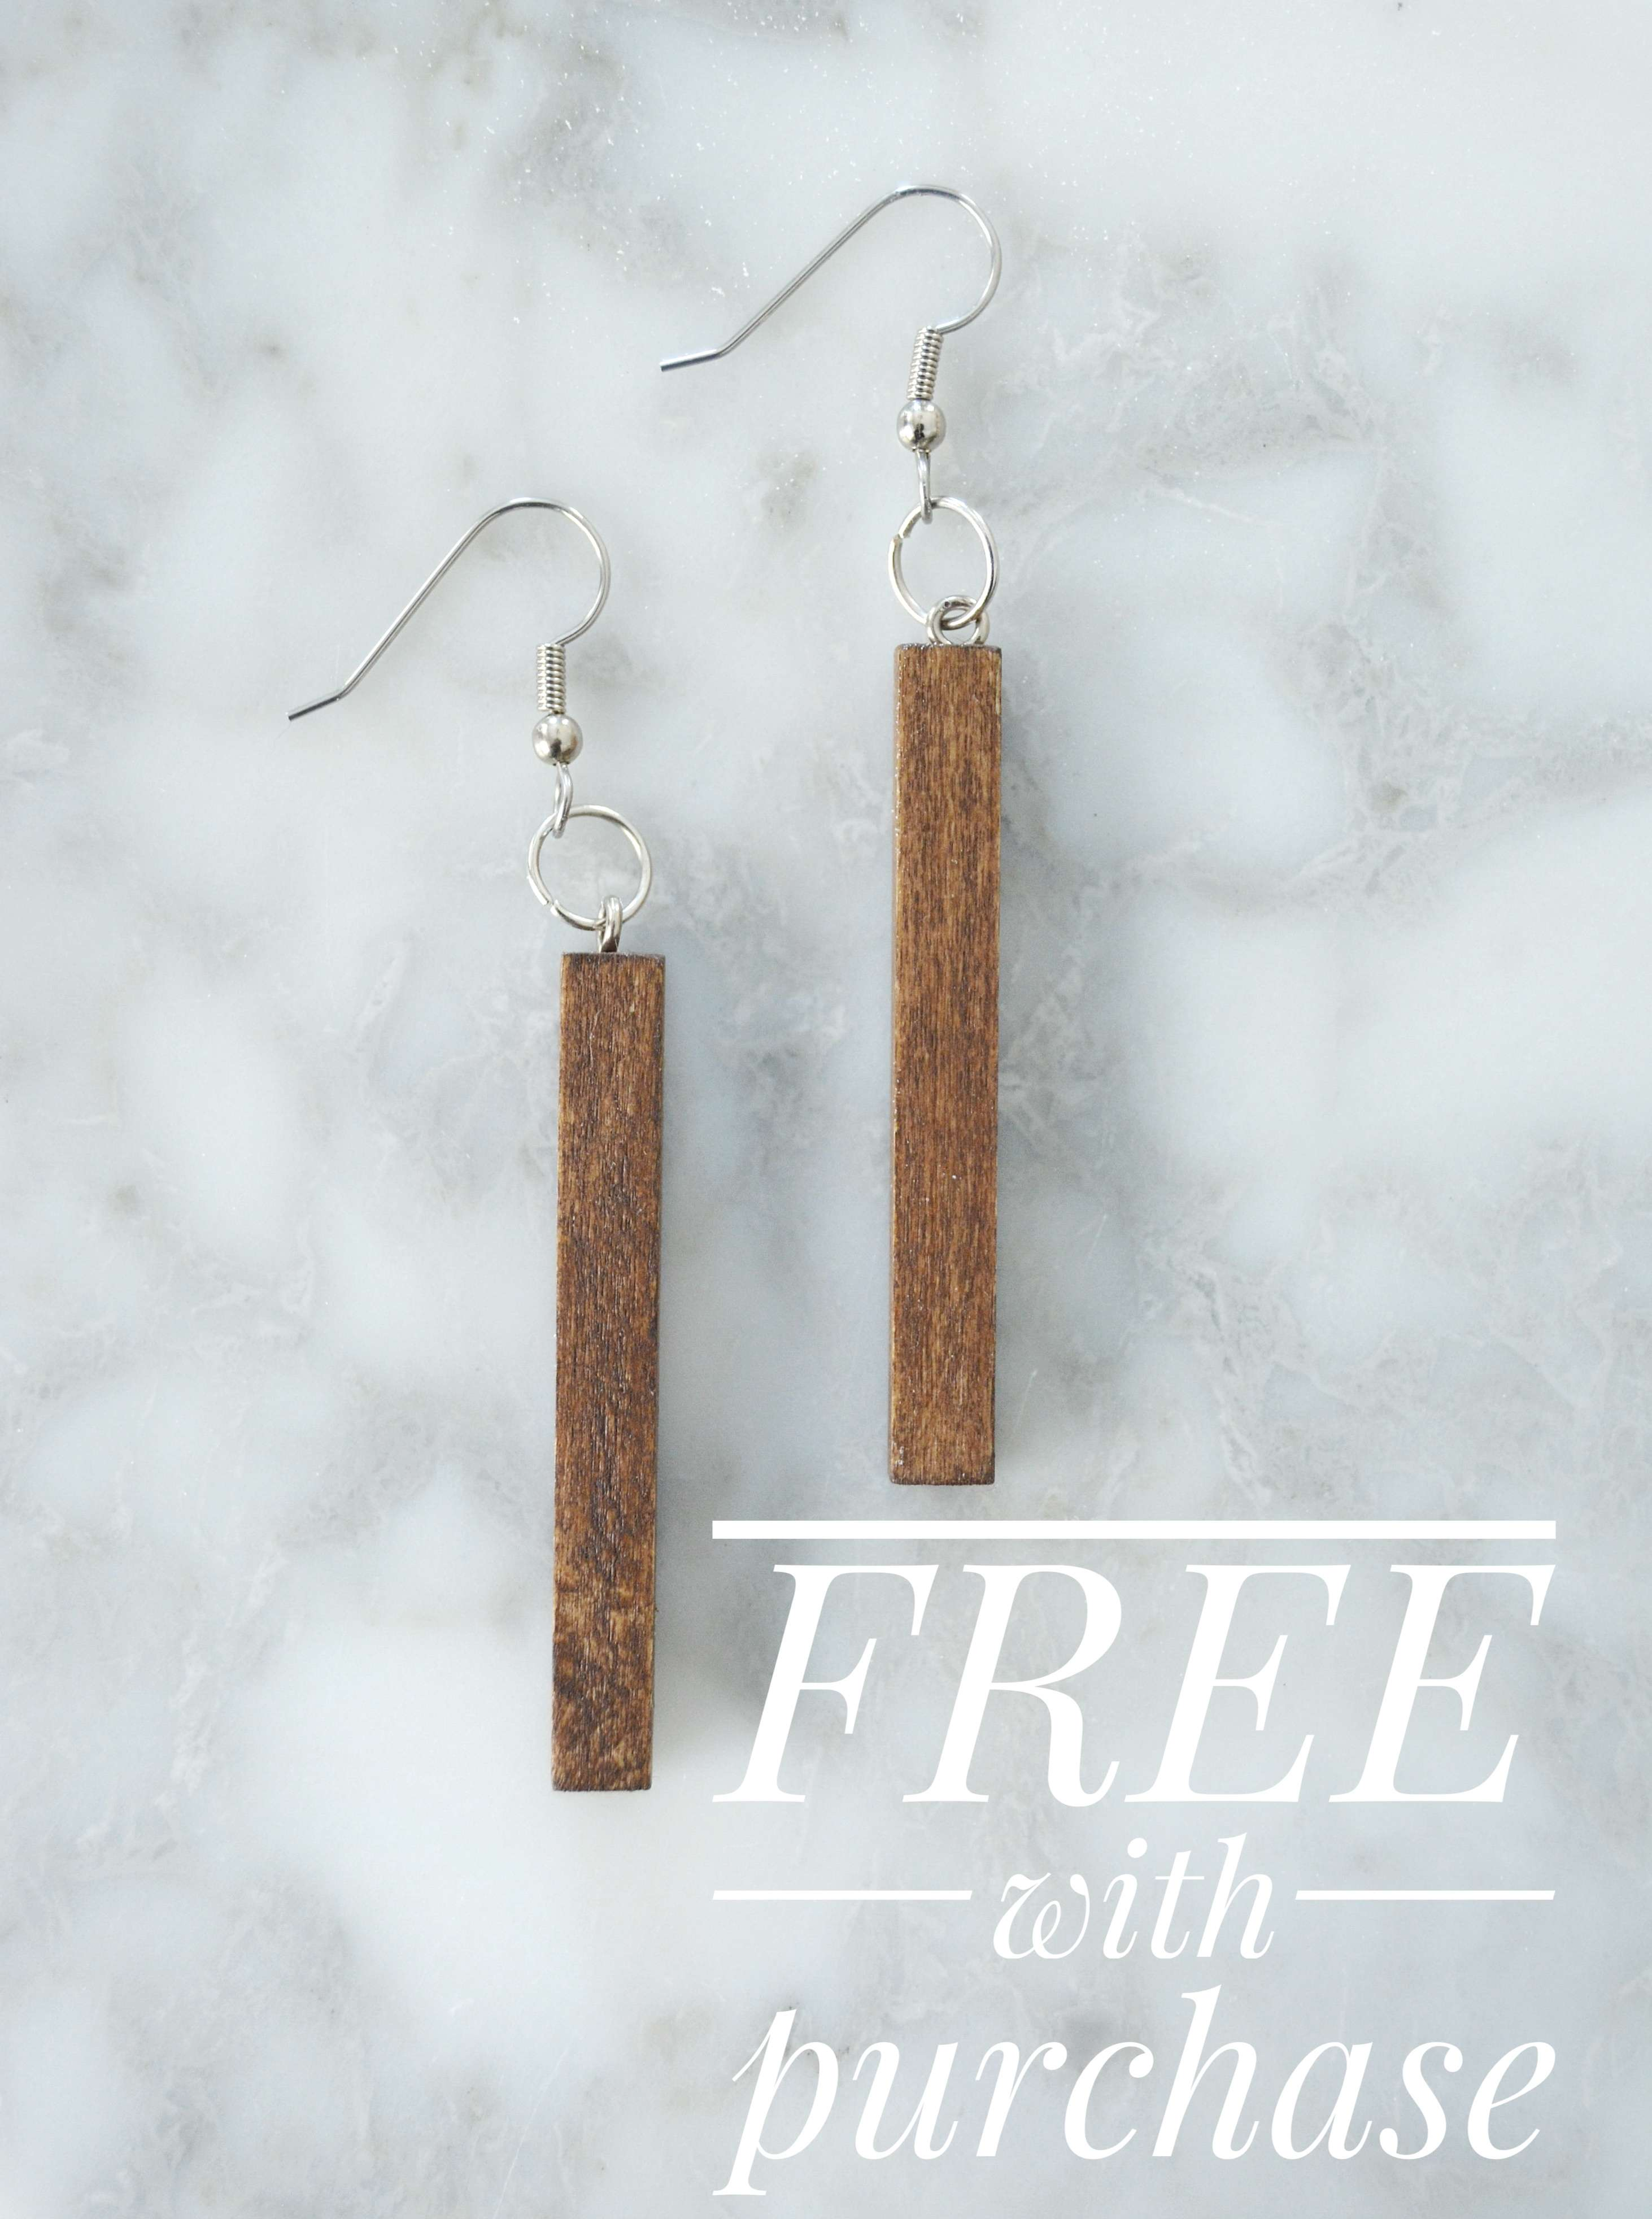 The Grace In My Space Jewelry Collection has arrived! I'm loving the natural elements of wood, marble and leather combinations that have been incorporated into this gorgeous modern farmhouse jewelry collection in collaboration with Dandelions in December.